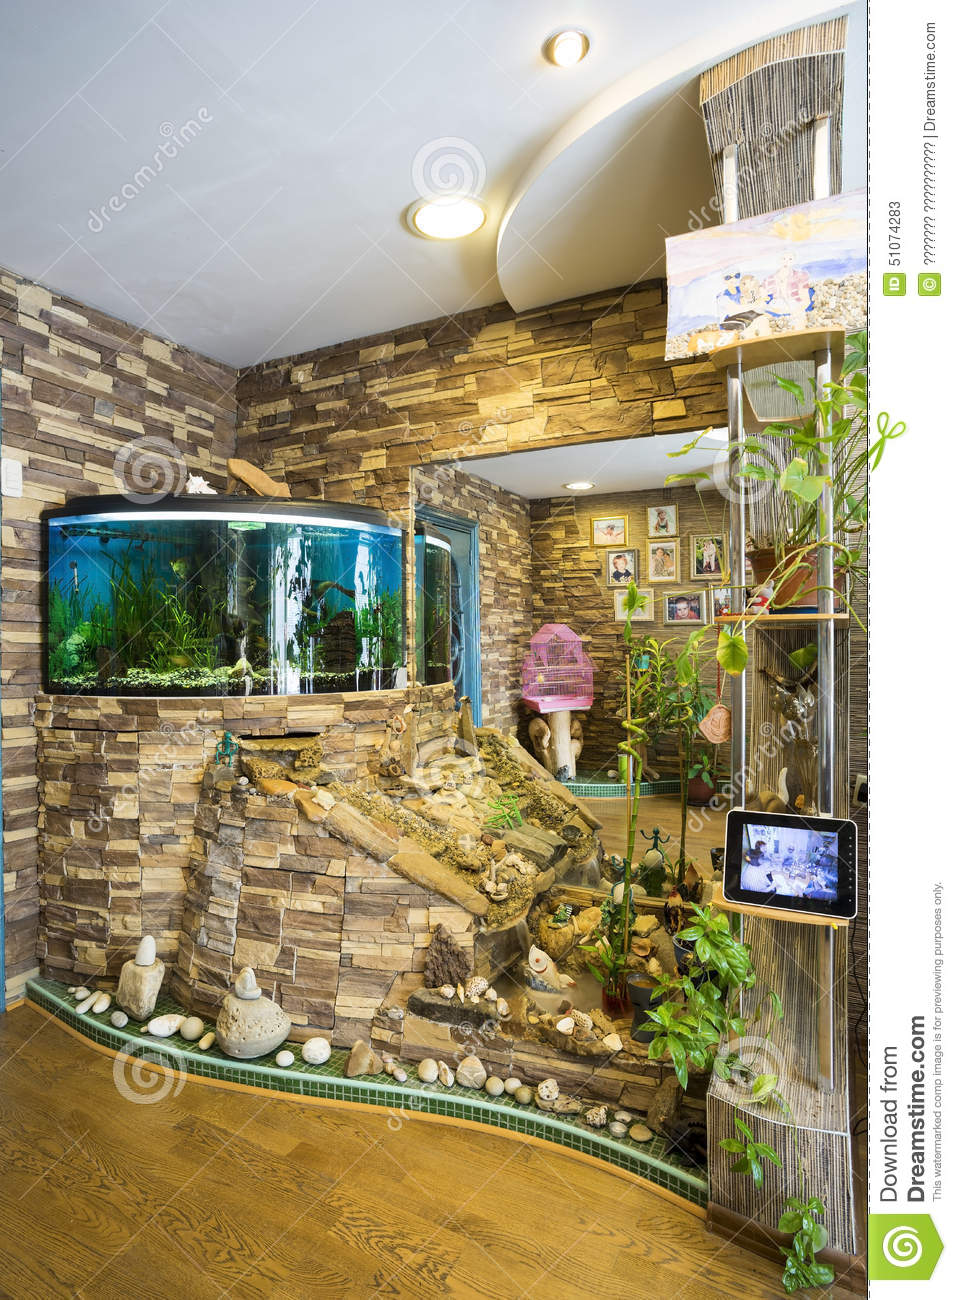 L 39 int rieur de l 39 appartement avec l 39 aquarium photo stock for Aquarium interieur